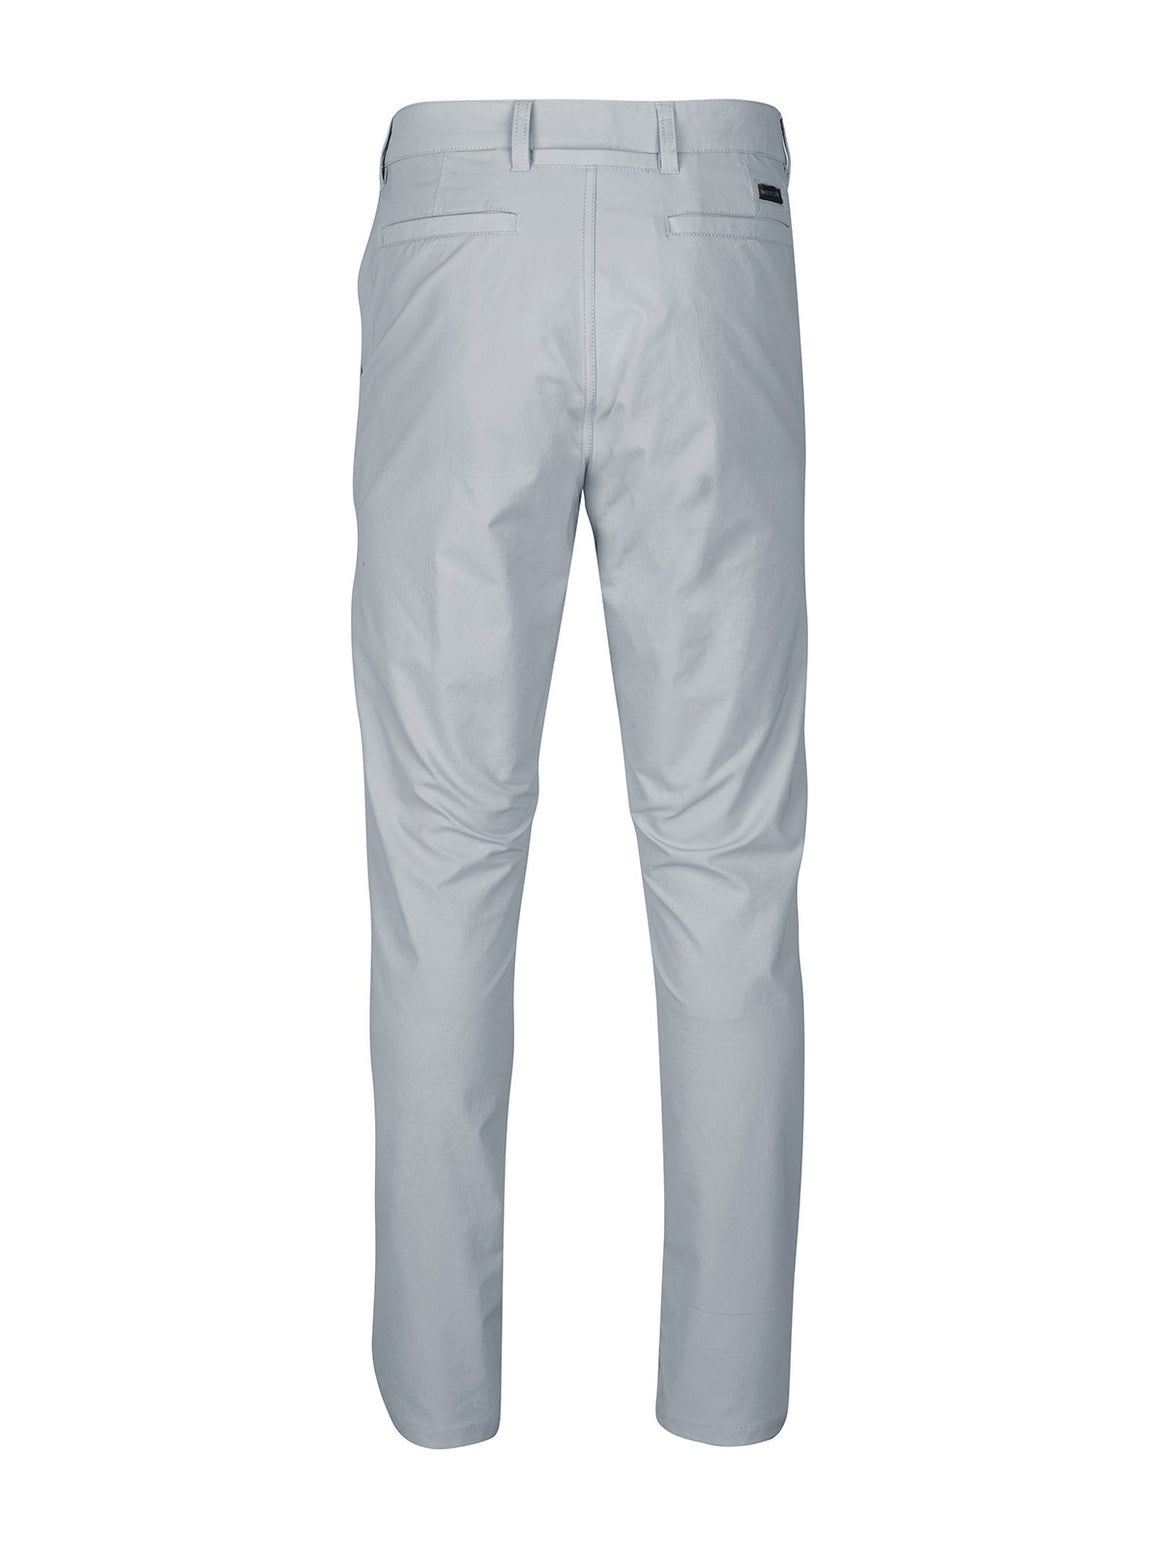 Trekker FIT101 Pant - Opal Grey